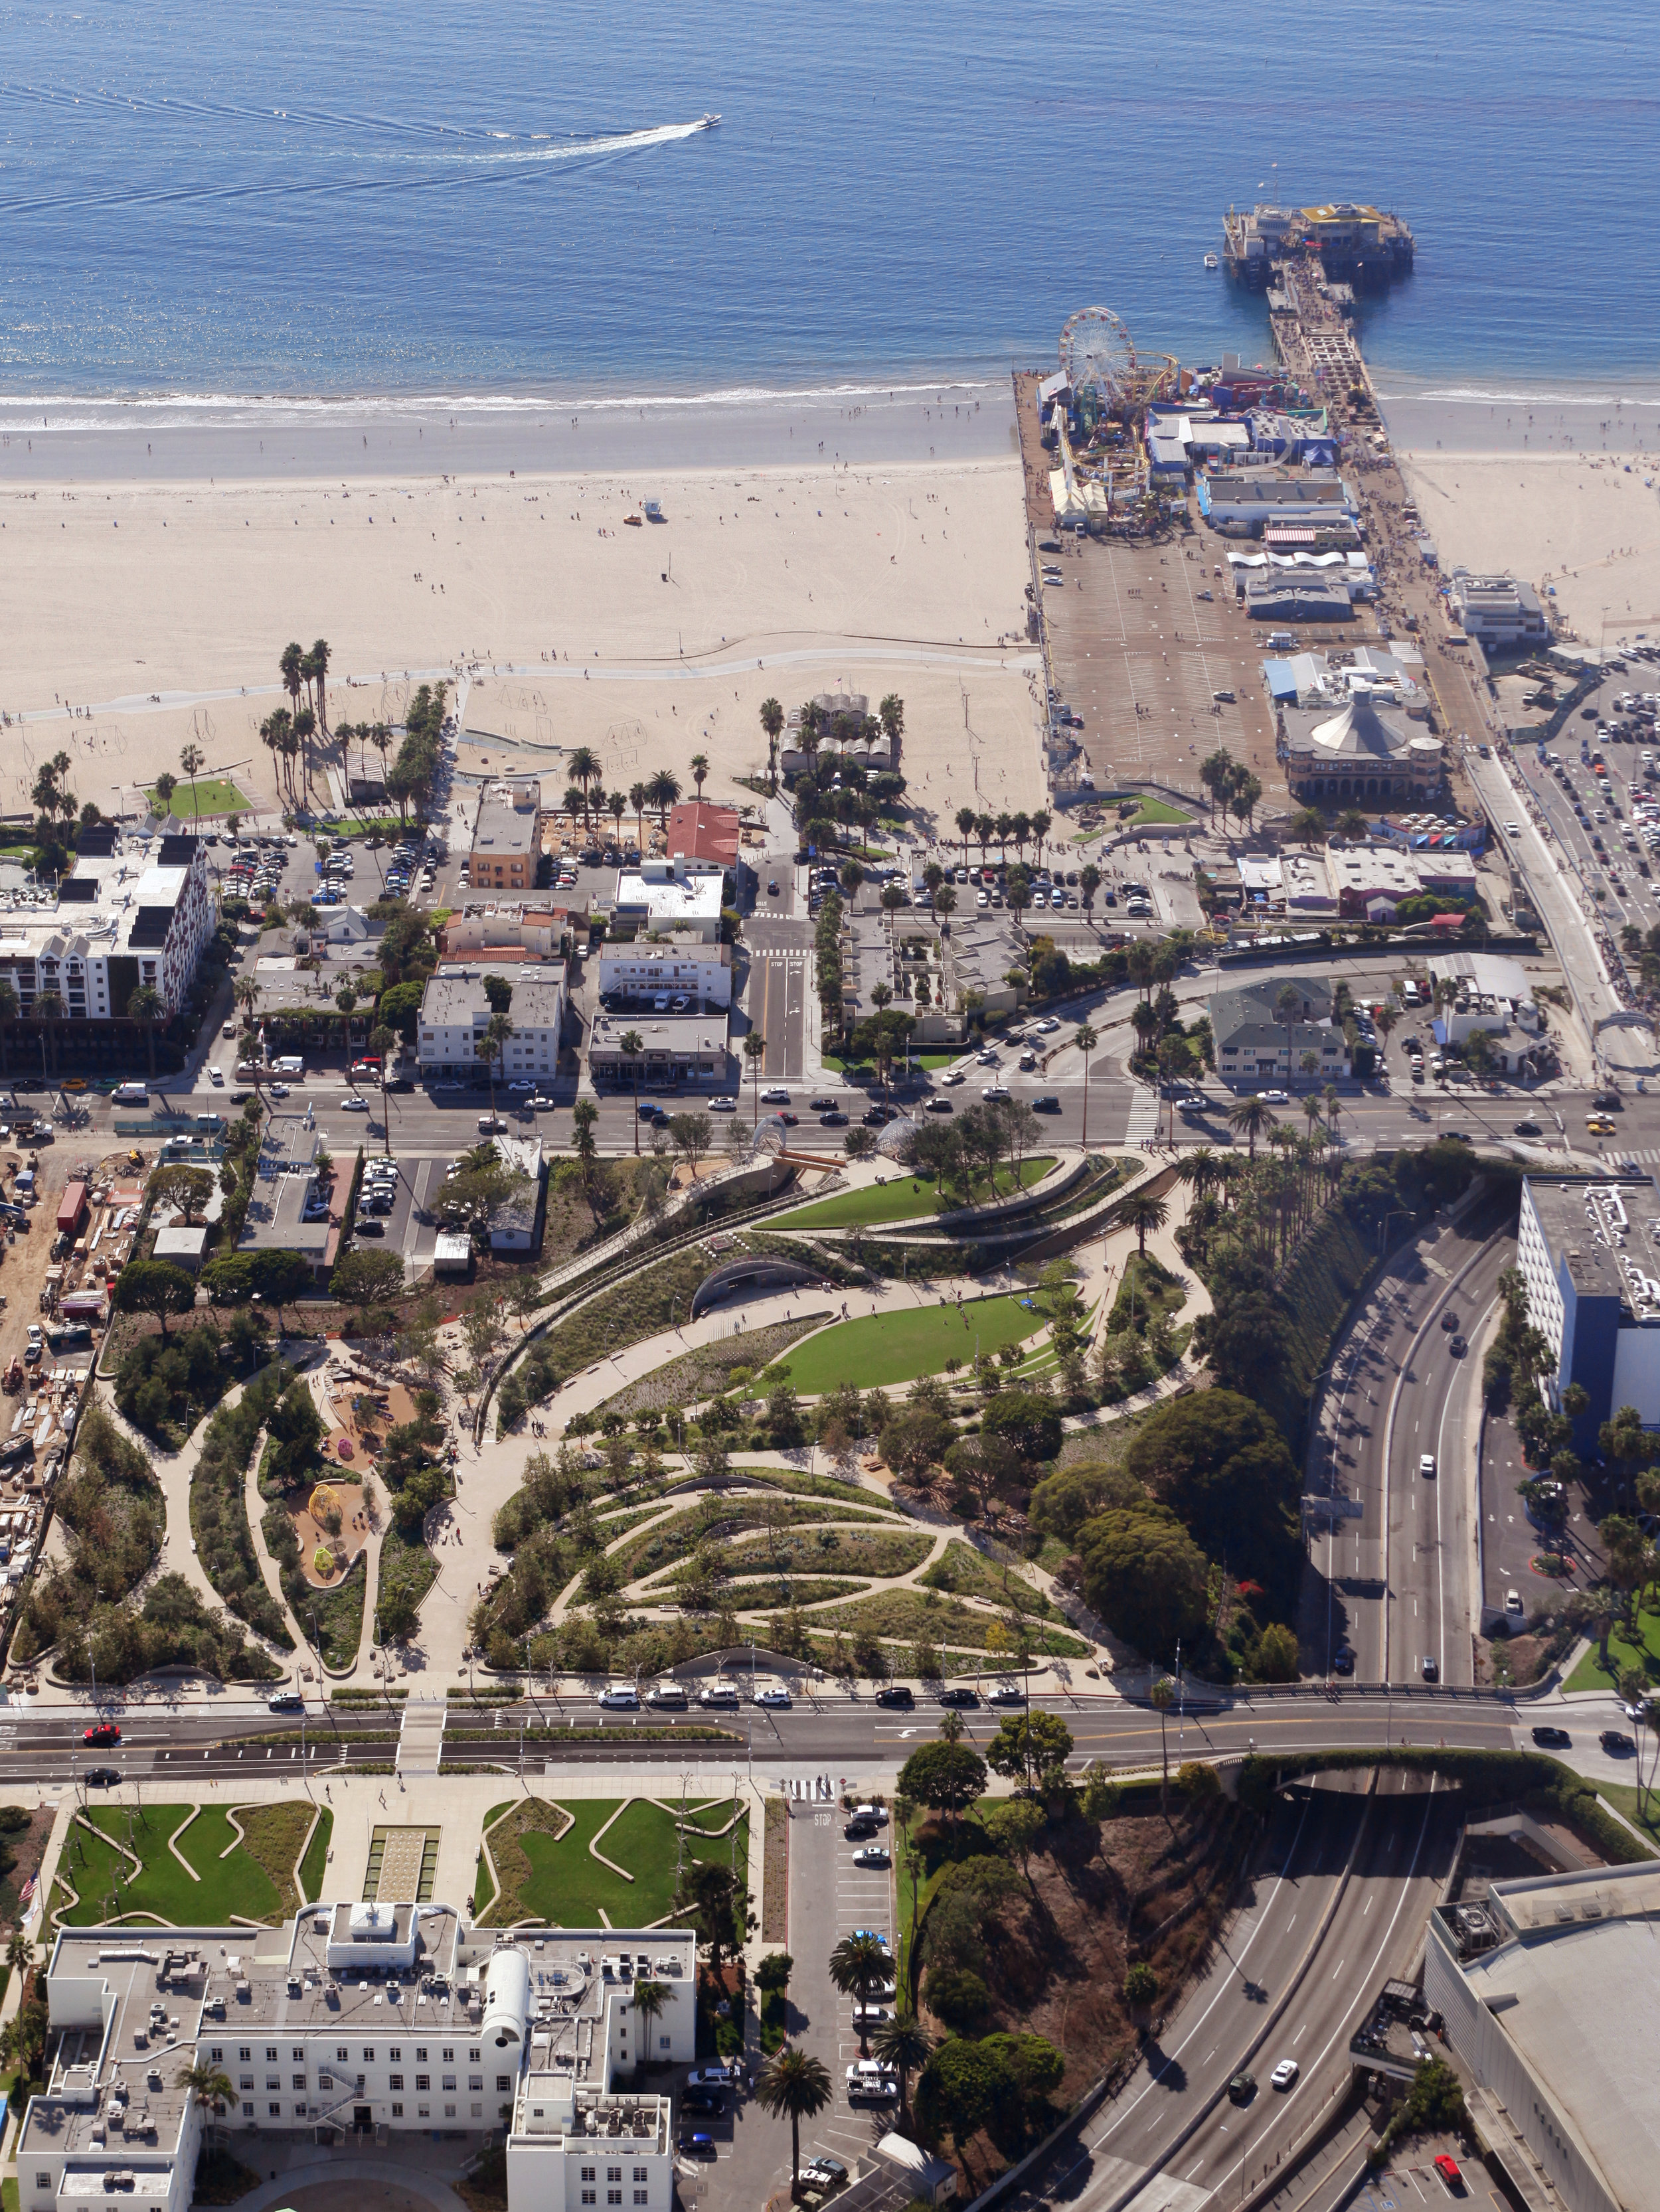 Tongva Park in Santa Monica from above.